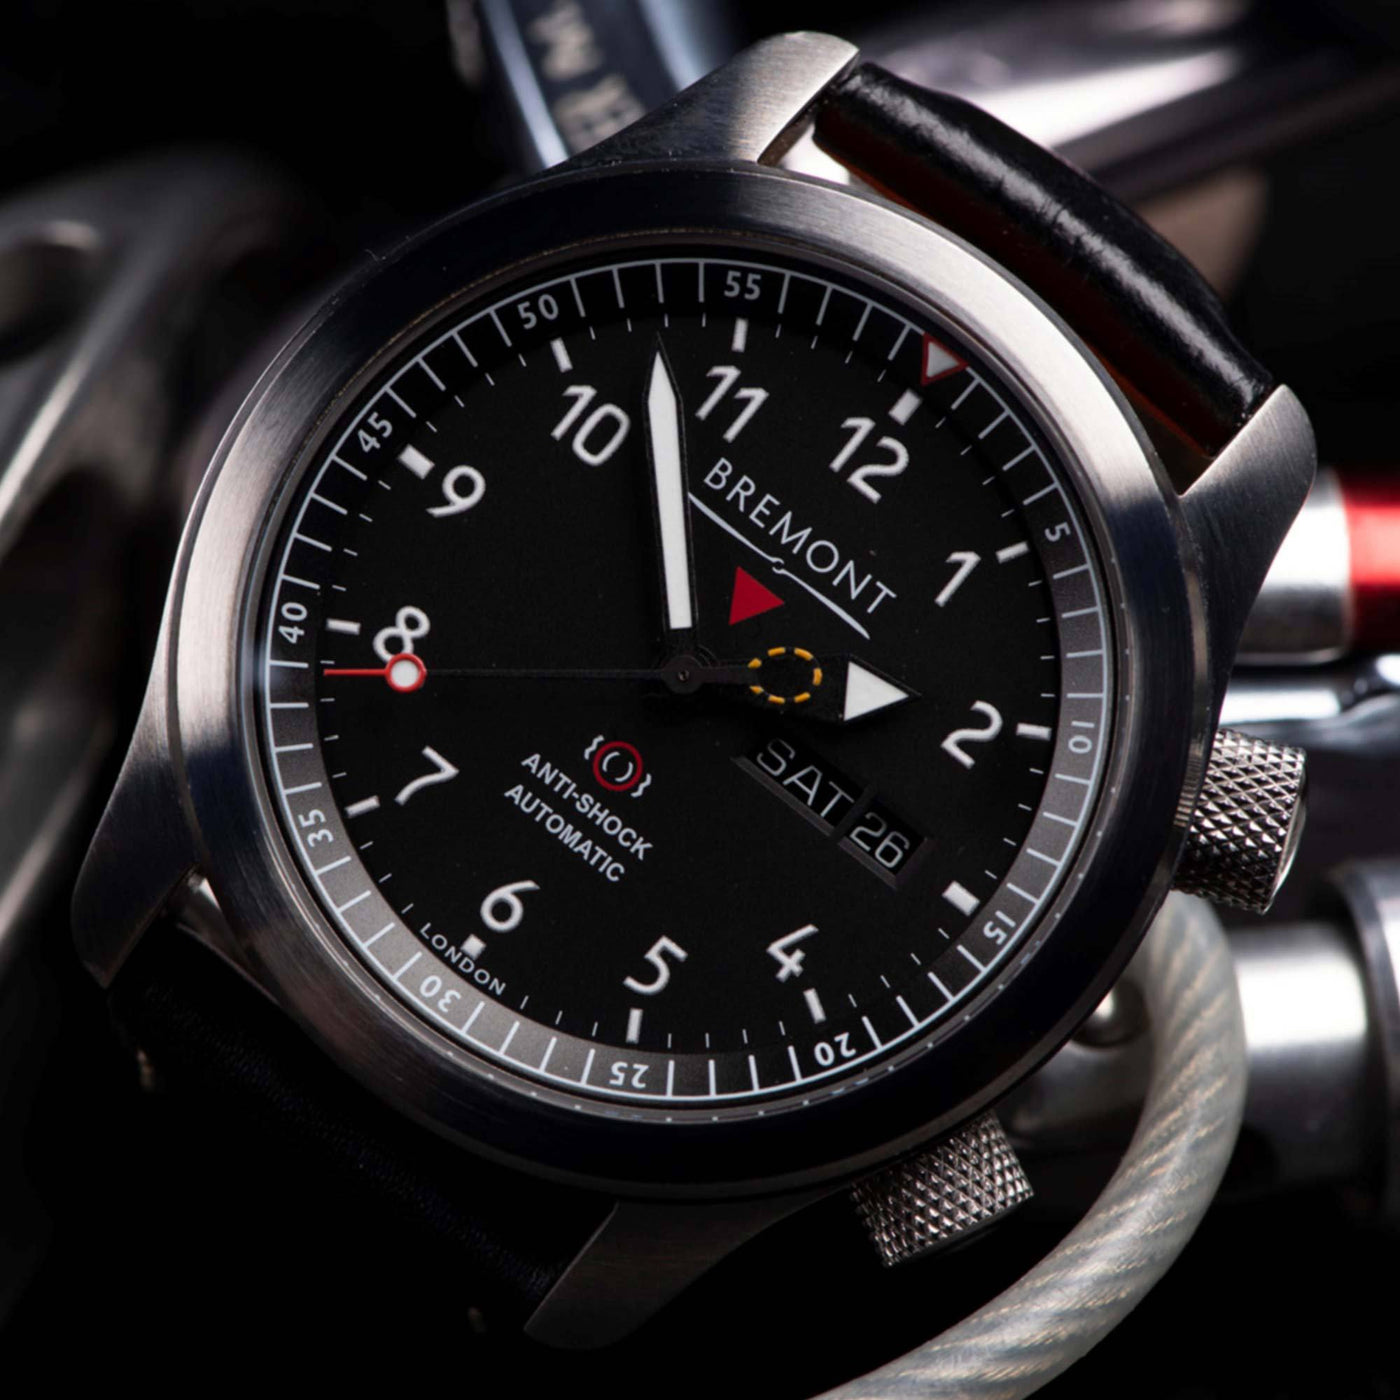 Bremont-MBII-BK-OR-watch-face